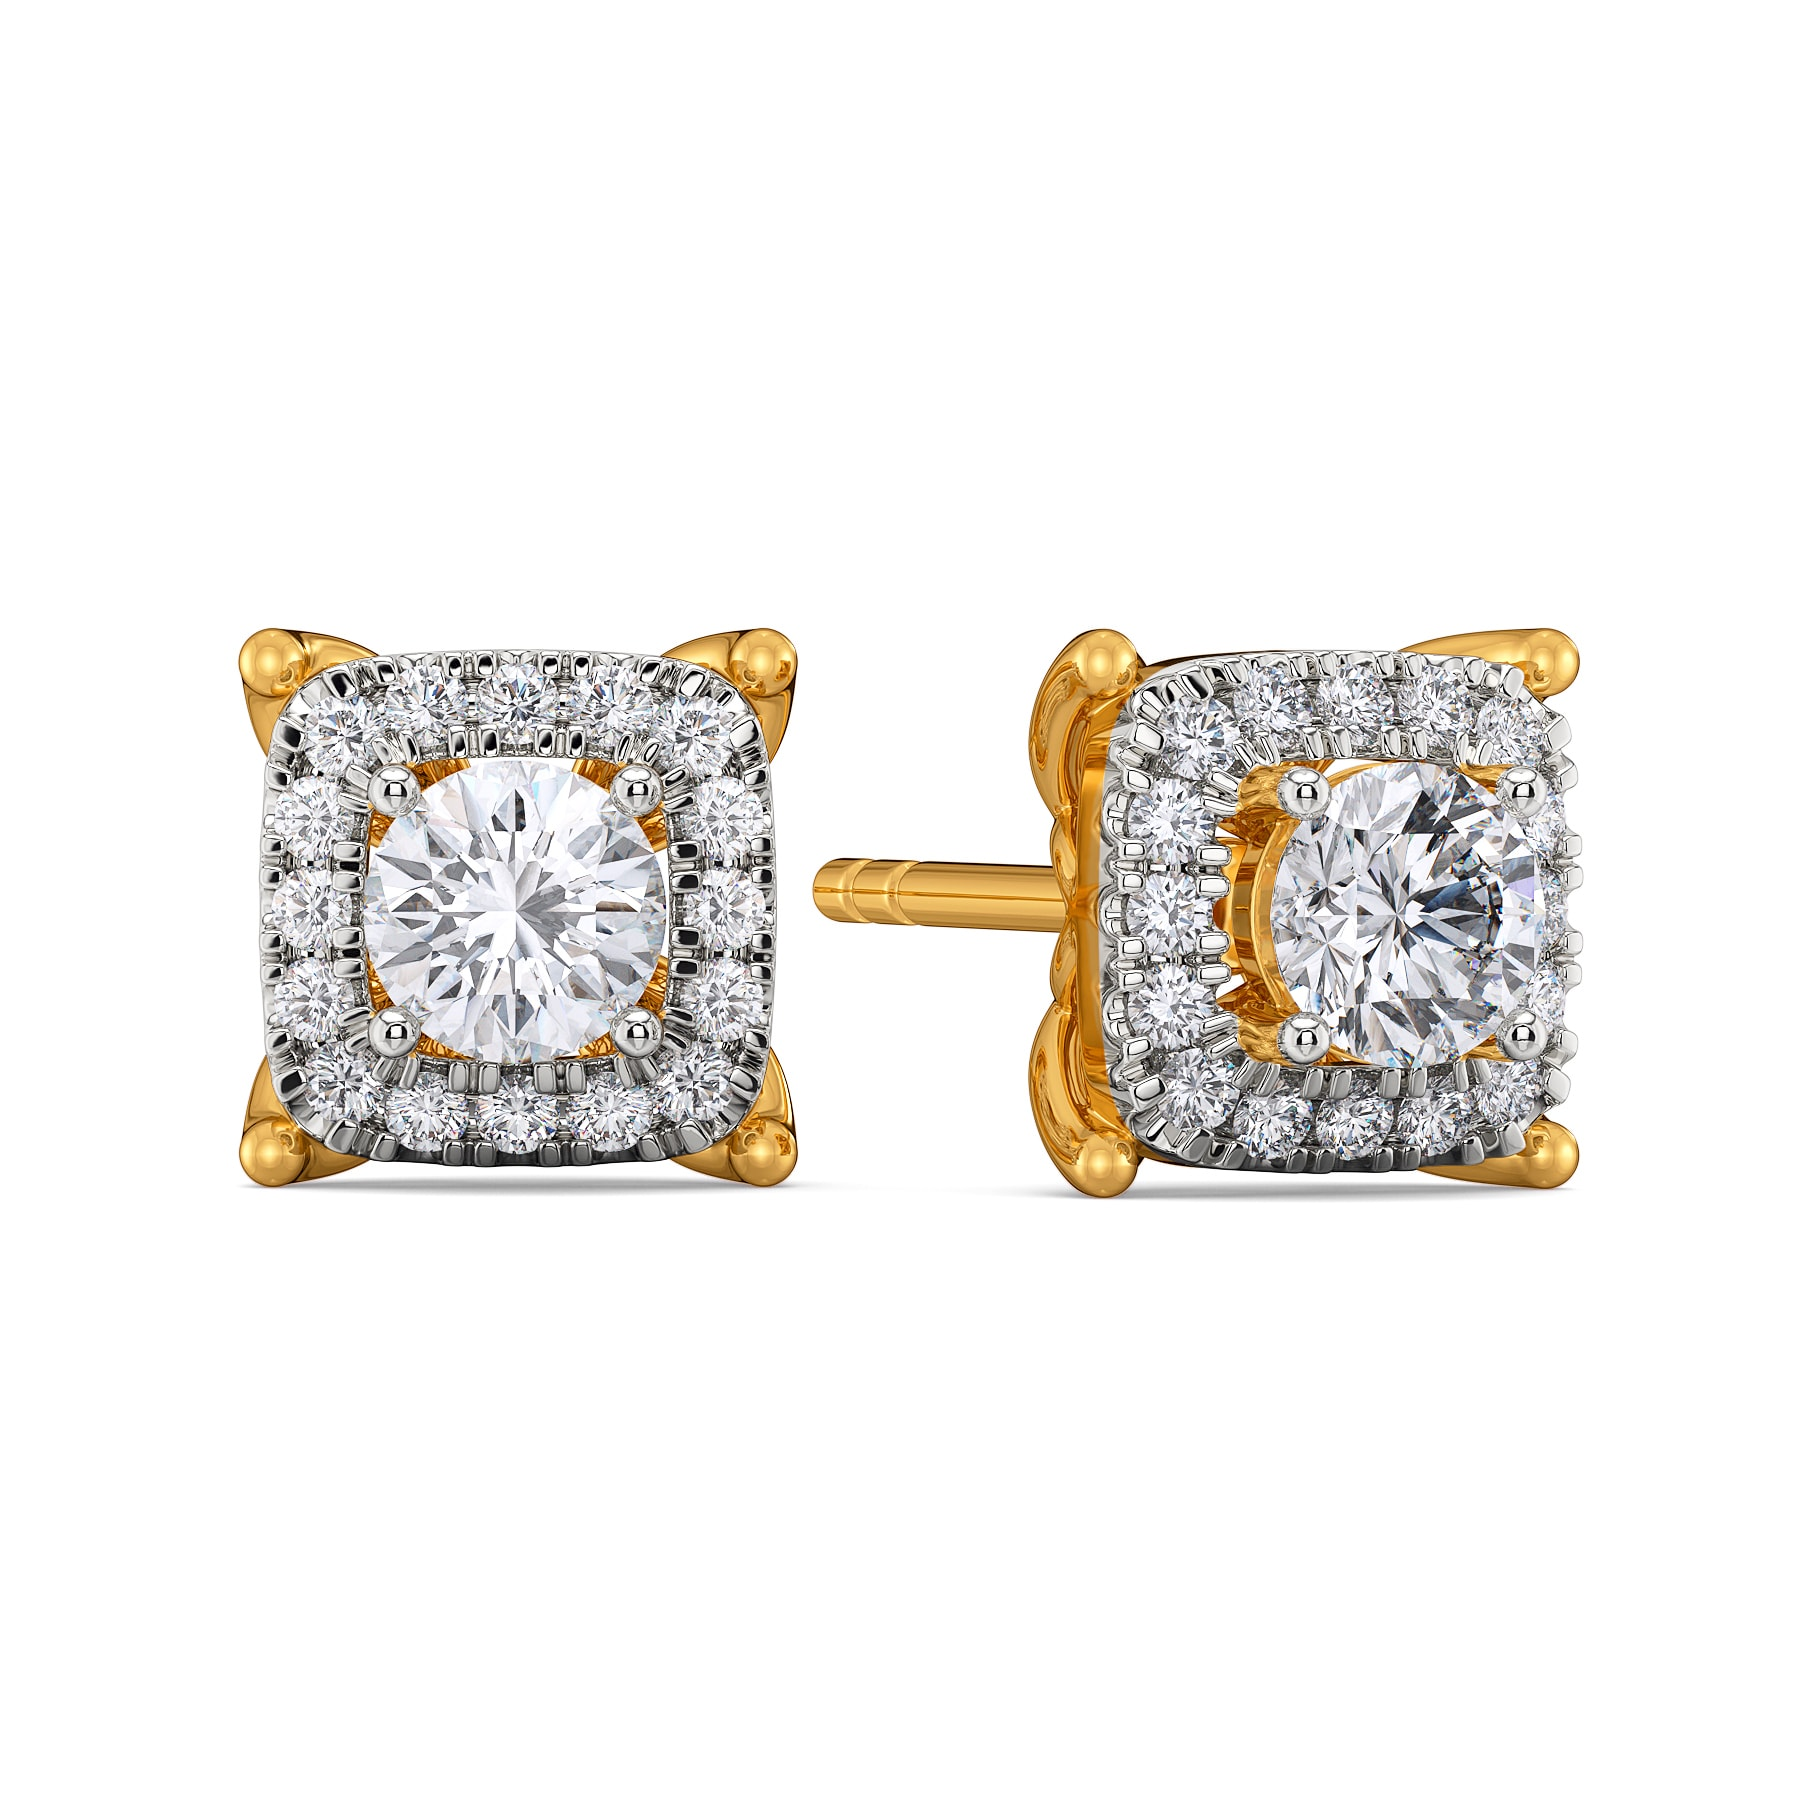 Four Squared Diamond Earrings